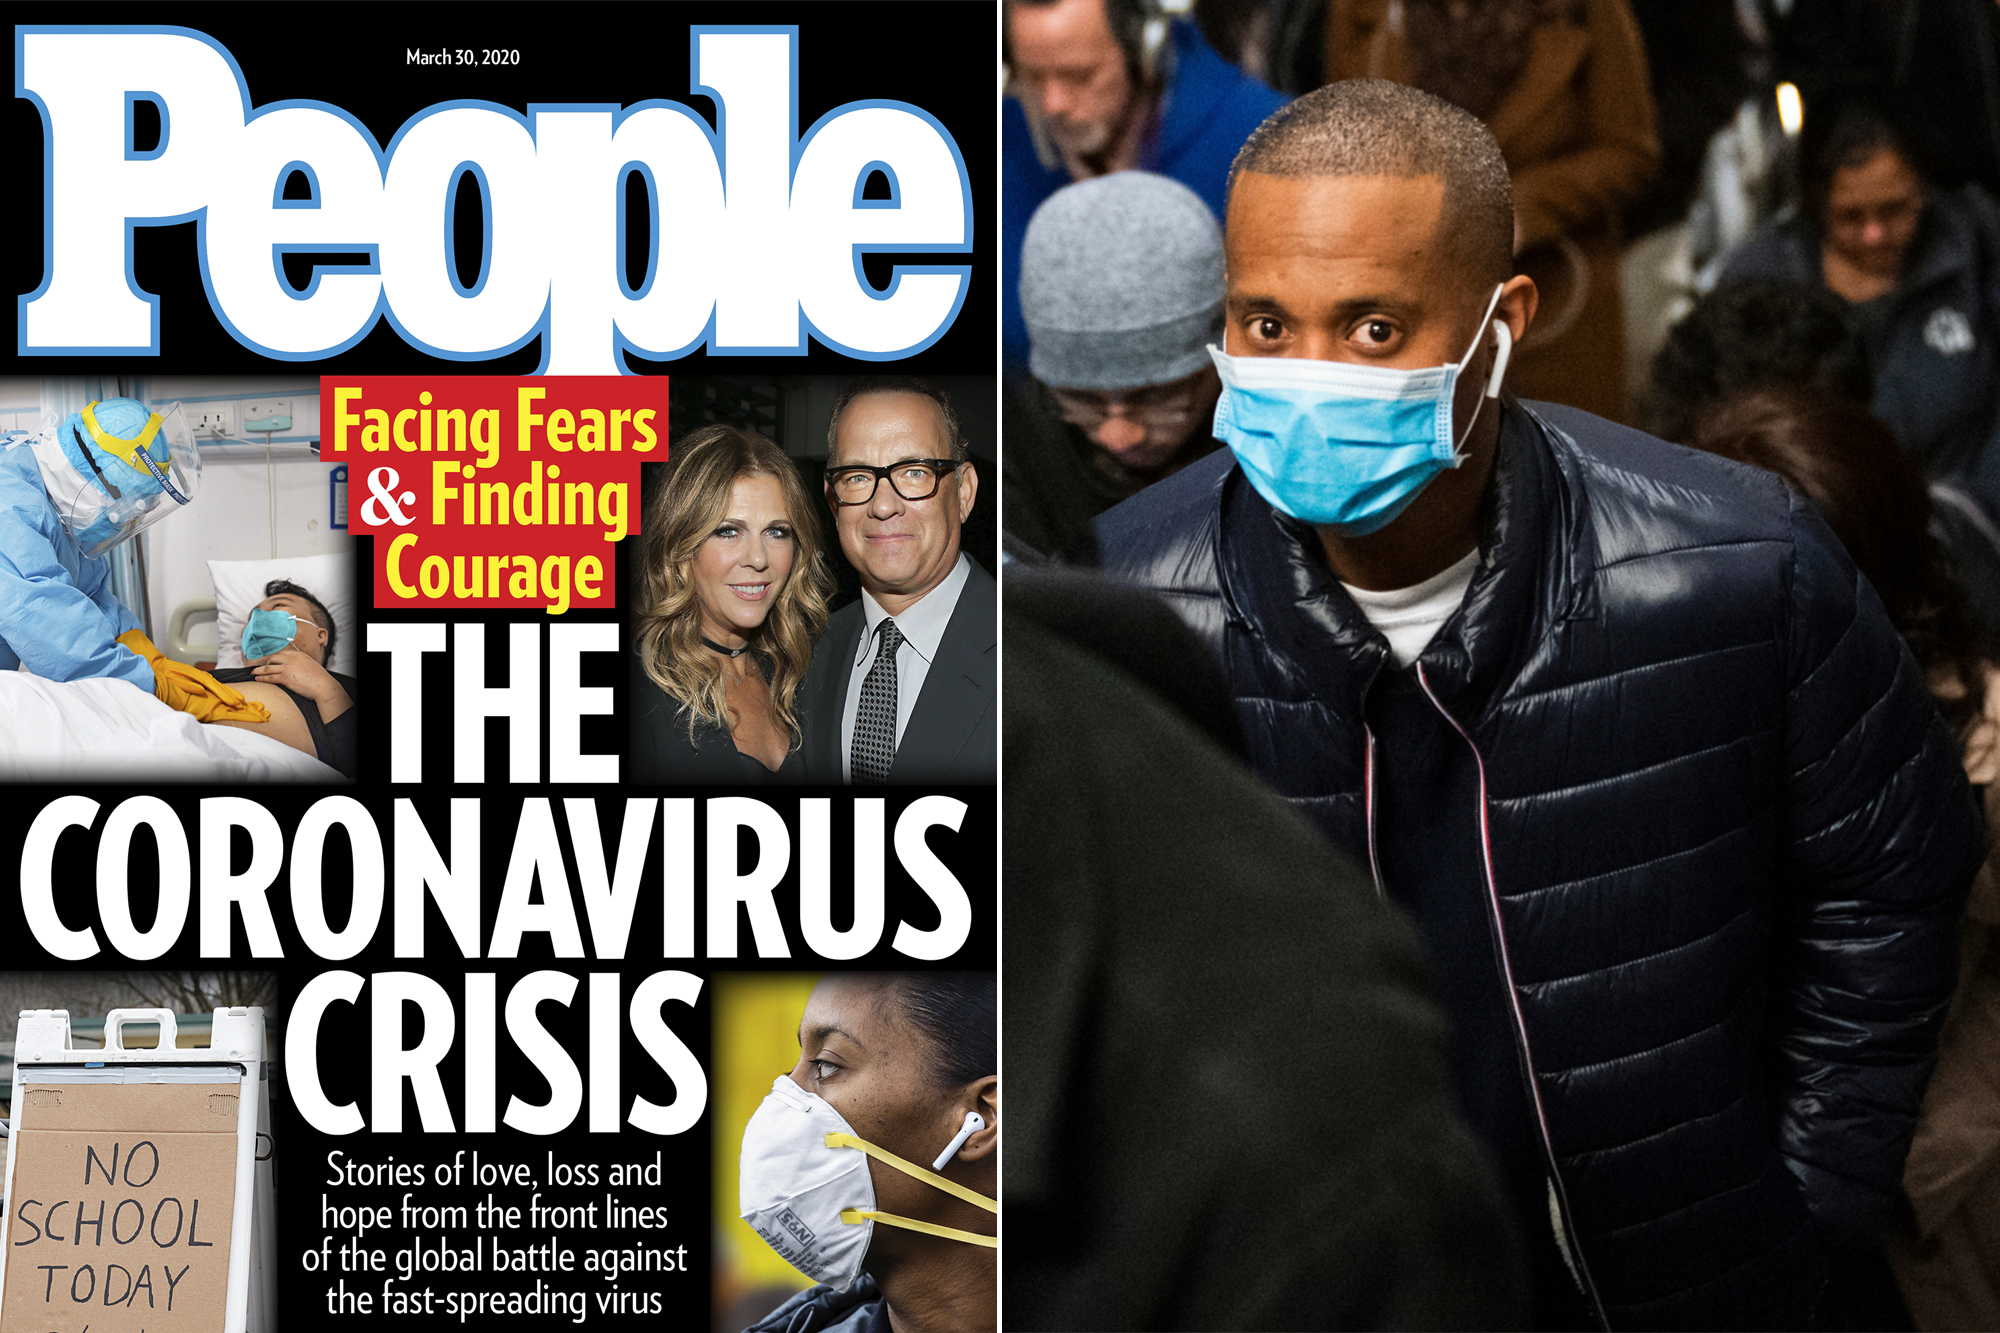 3/30/2020 cover of people magazine